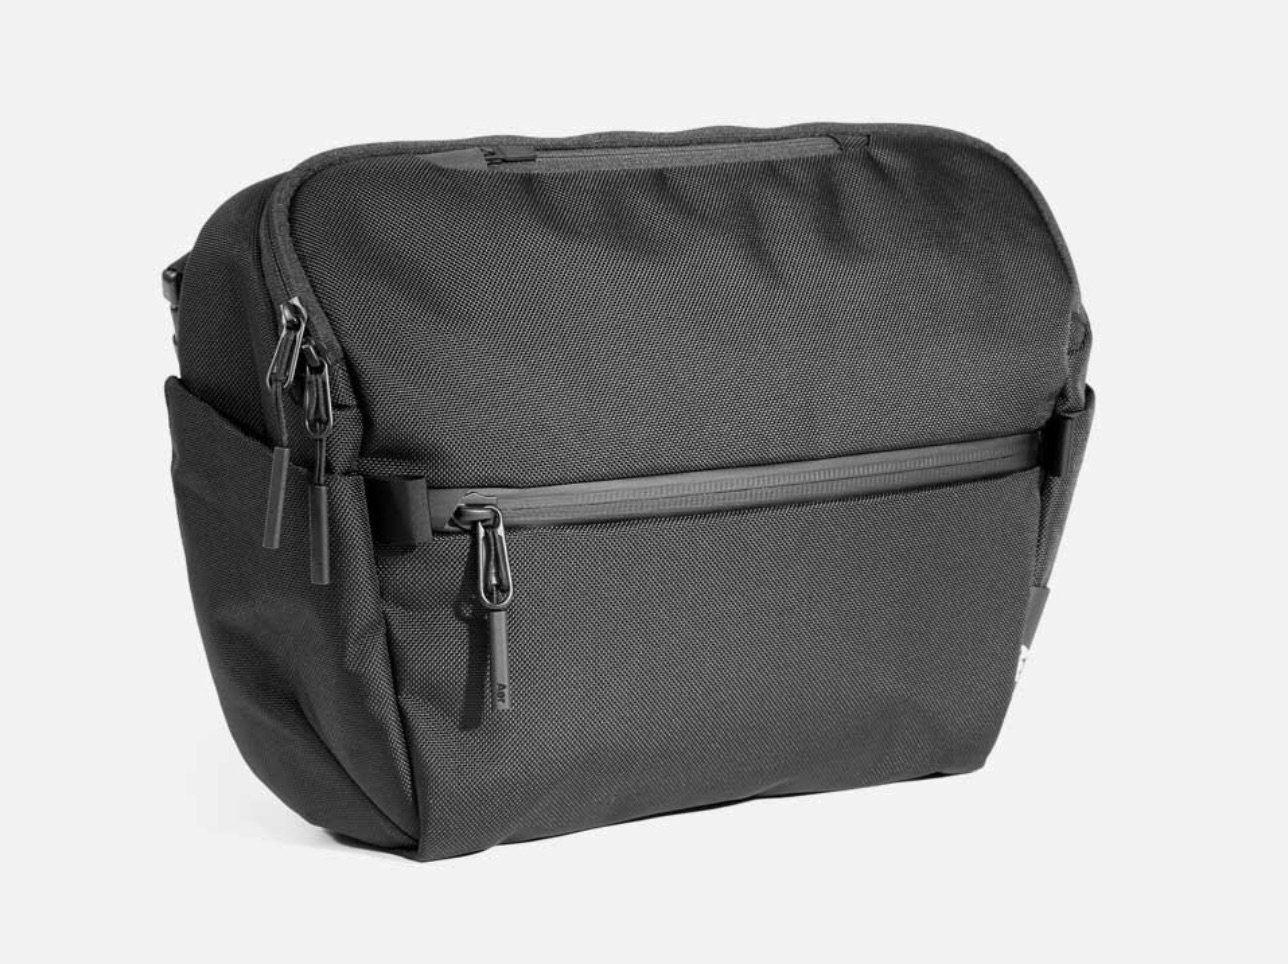 aer city messenger bag